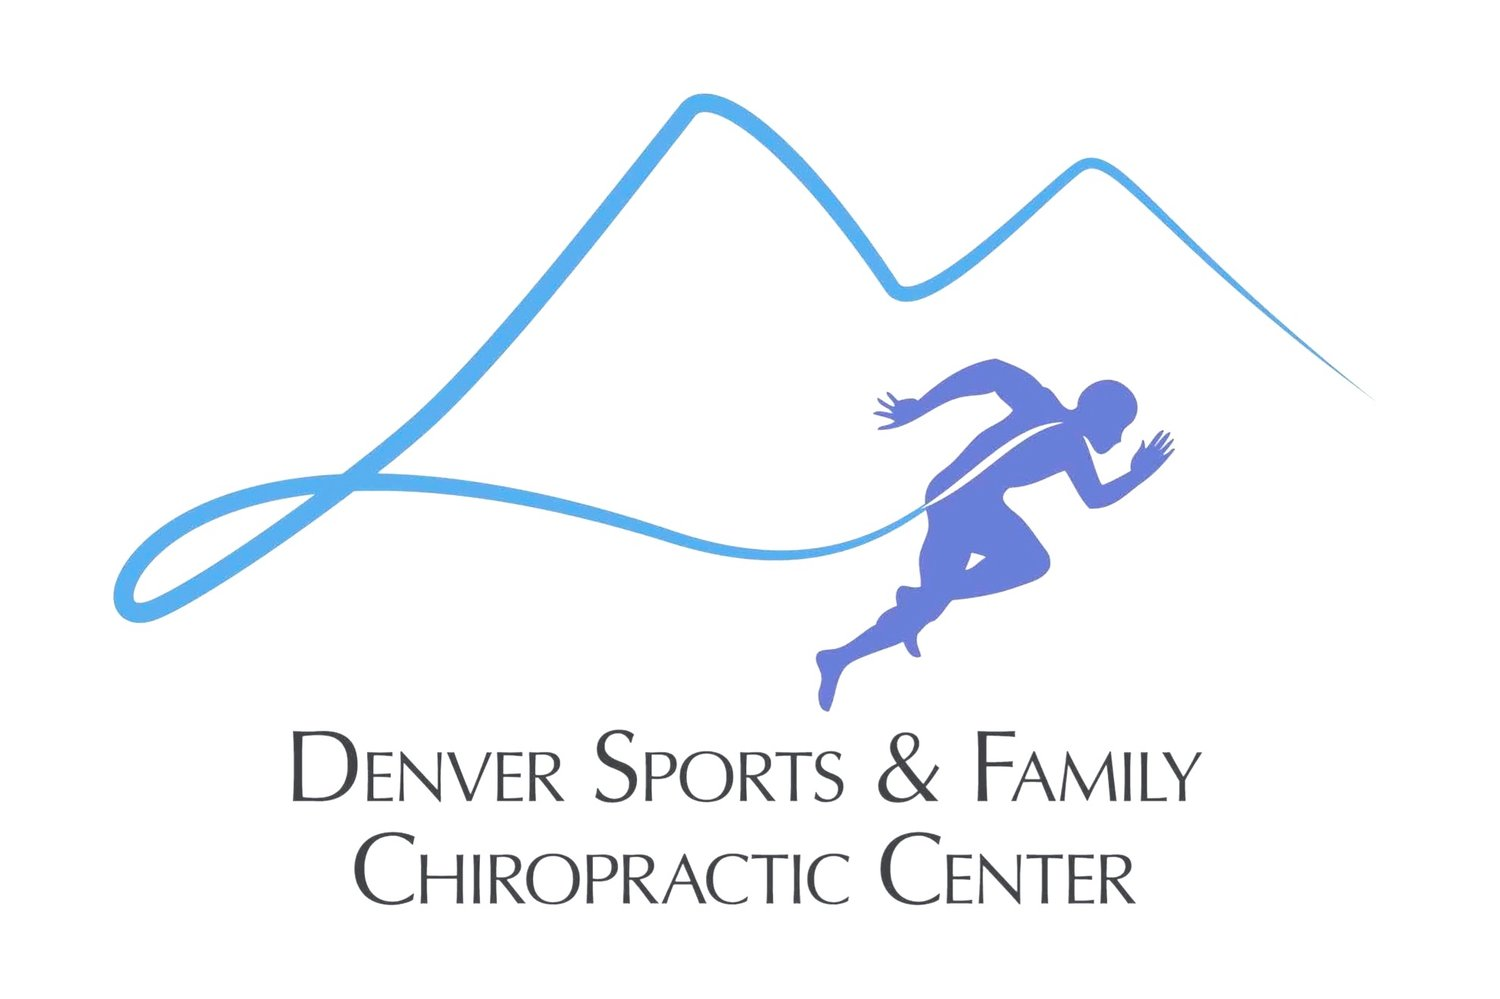 Denver Sports Chiropractor Chiropractic Colorado CO 80222